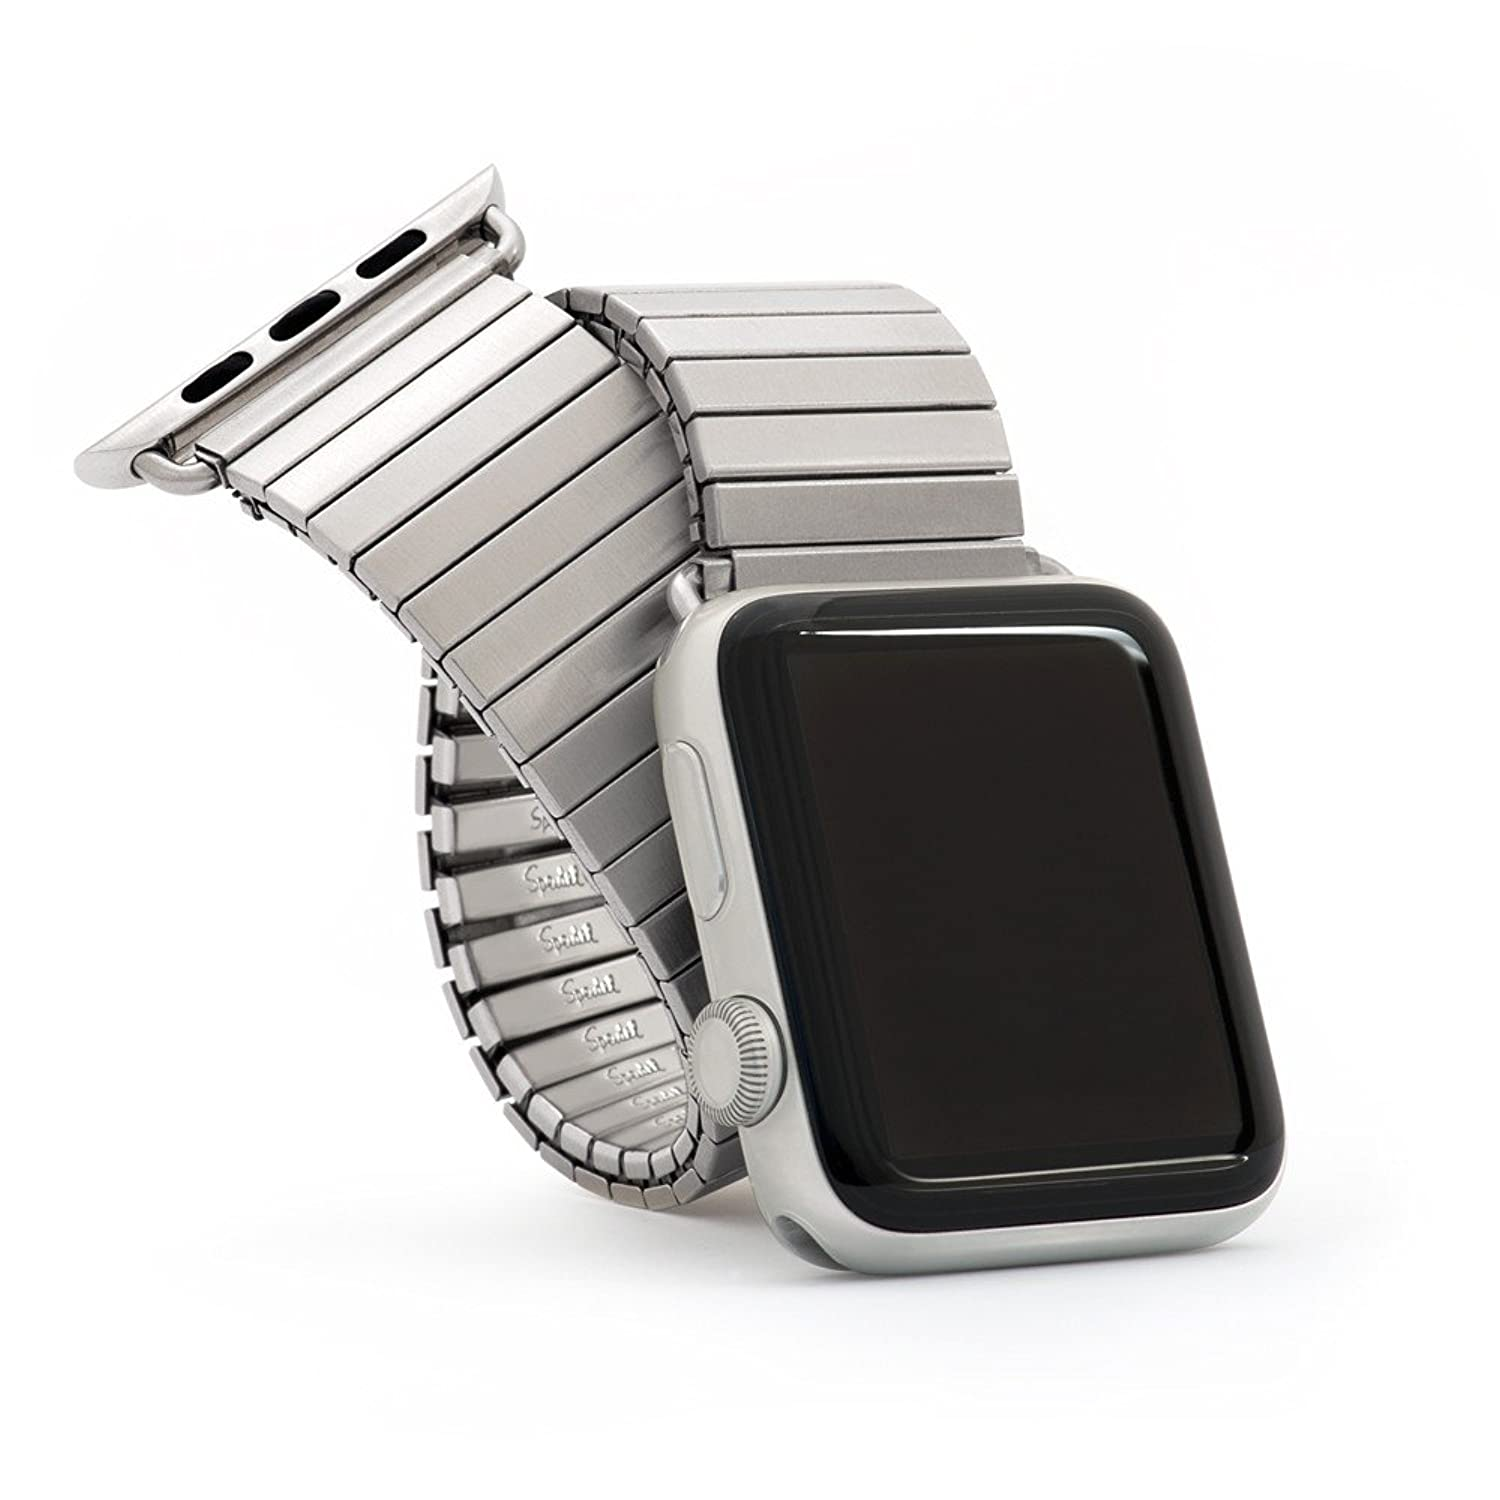 Twistoflex Brushed Stainless Steel Expansion Band For The 42mm Apple Watch